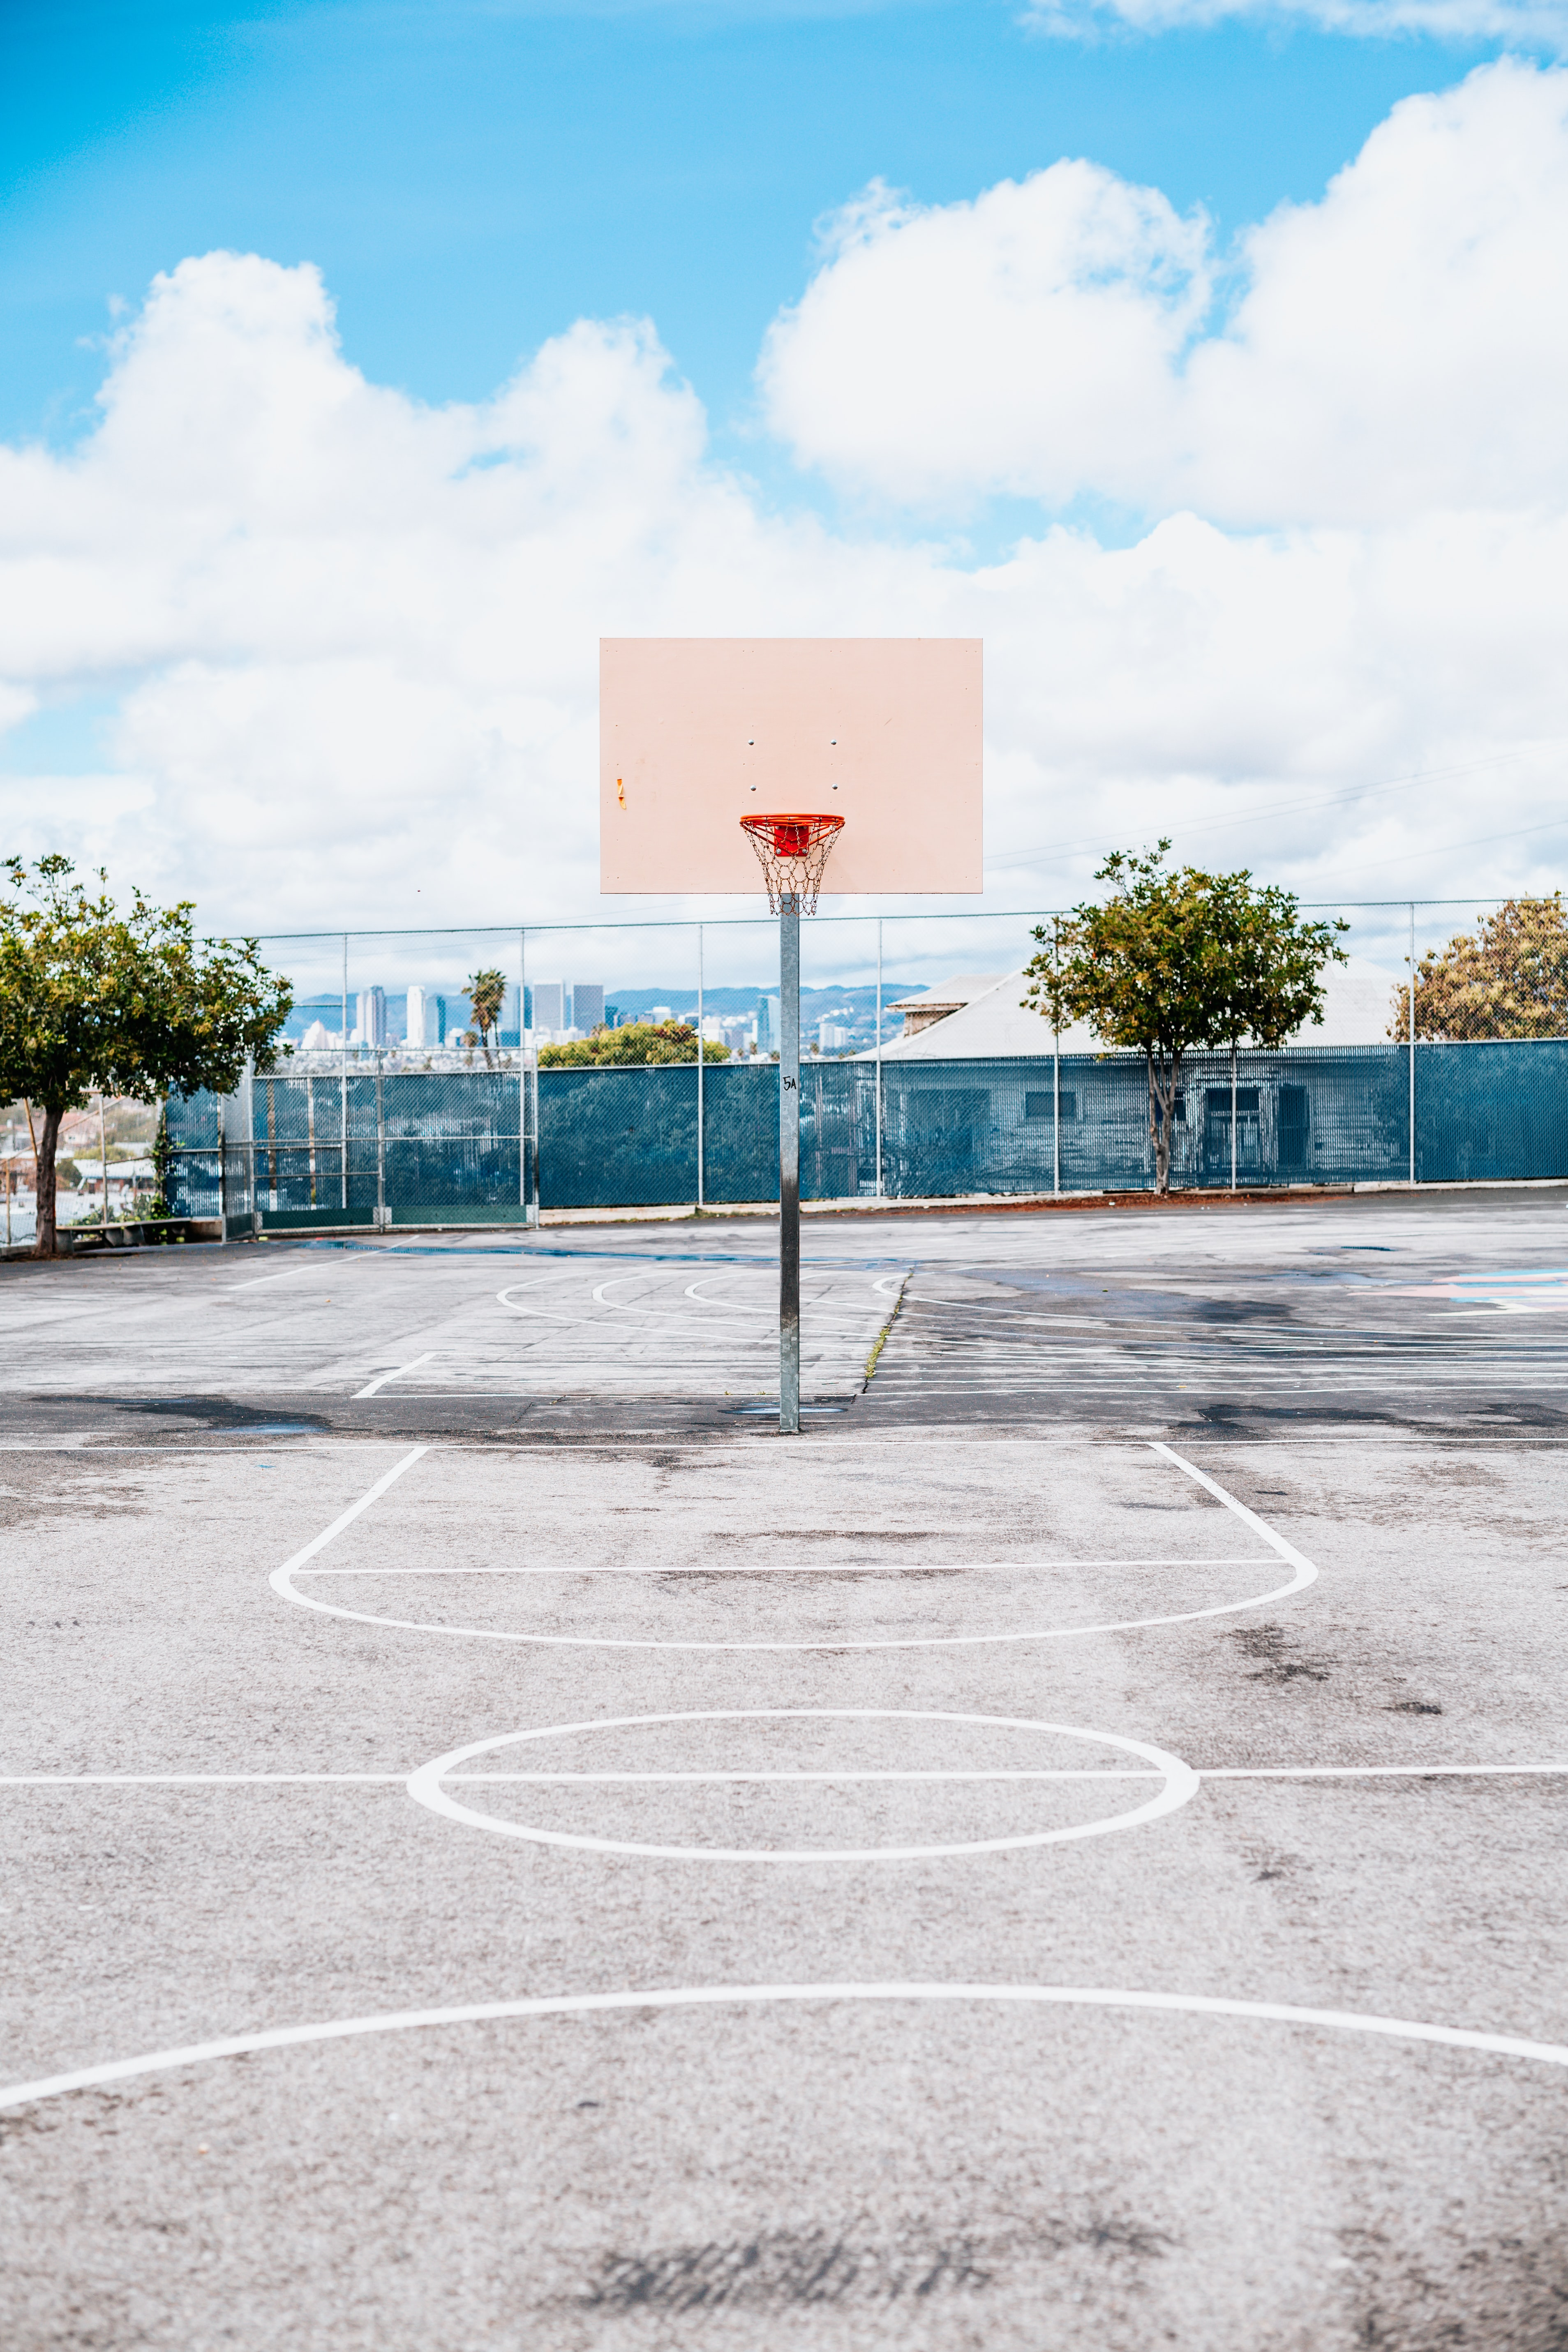 basketball ring under cloudy sky